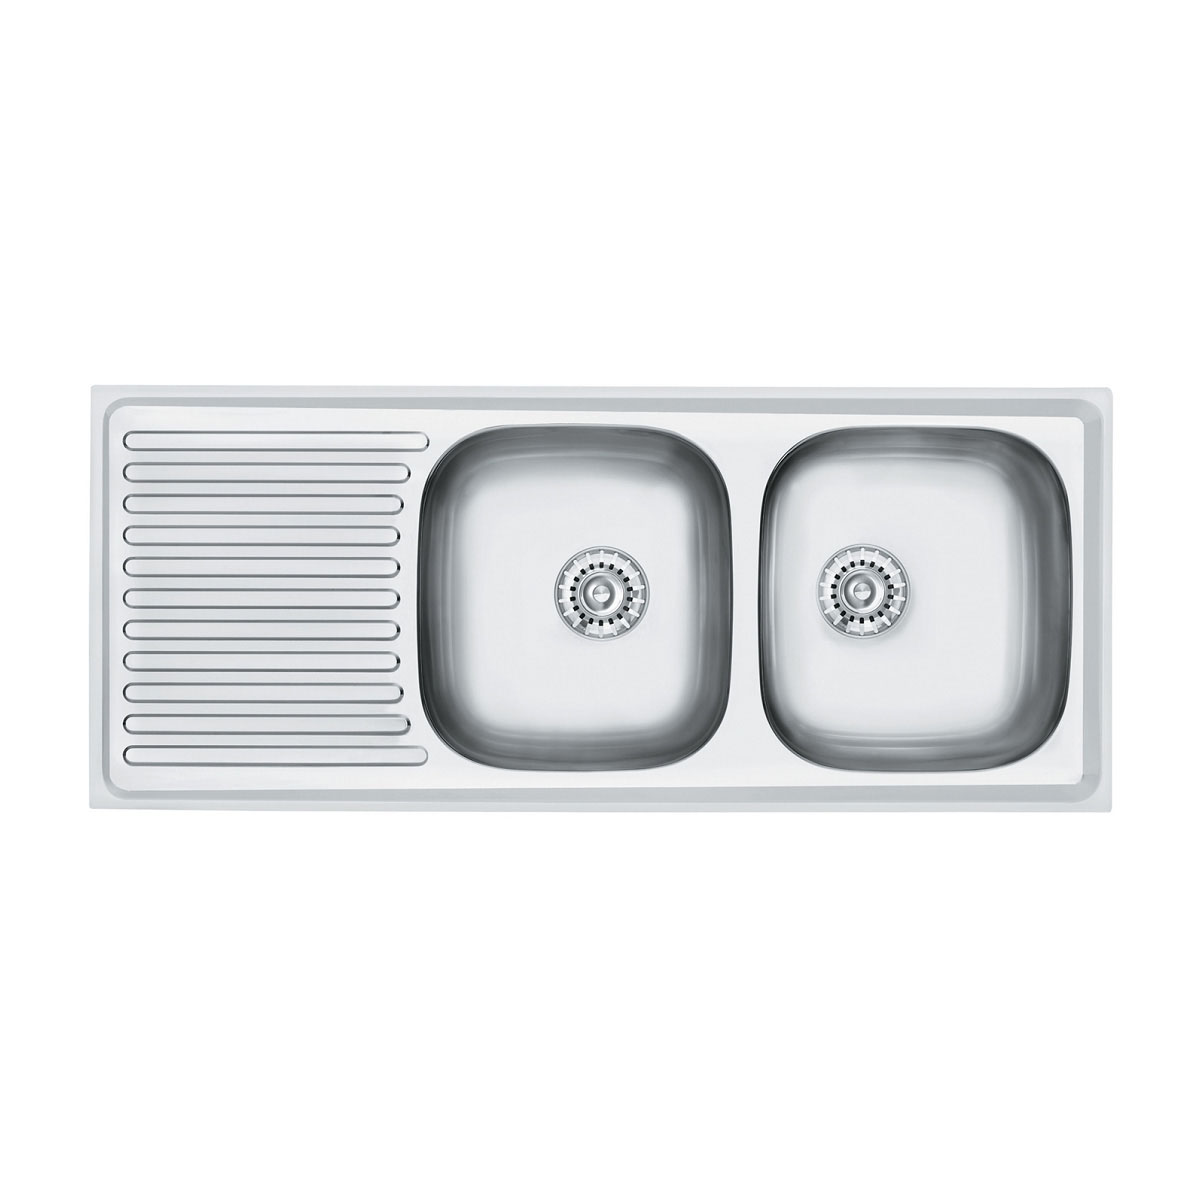 Clark R175MK2-1R Radiant Double Bowl Sink with Left Hand Drainer